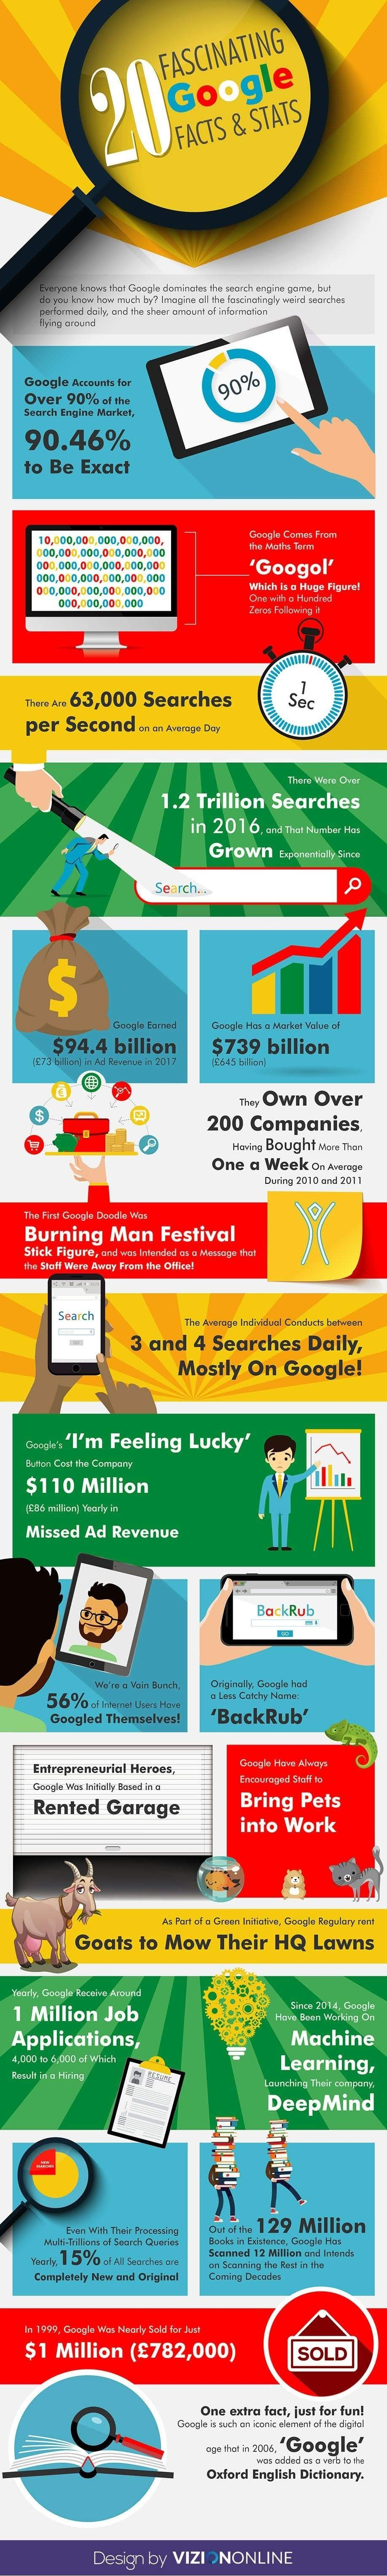 20 Fascinating Google Facts & Stats #infographic